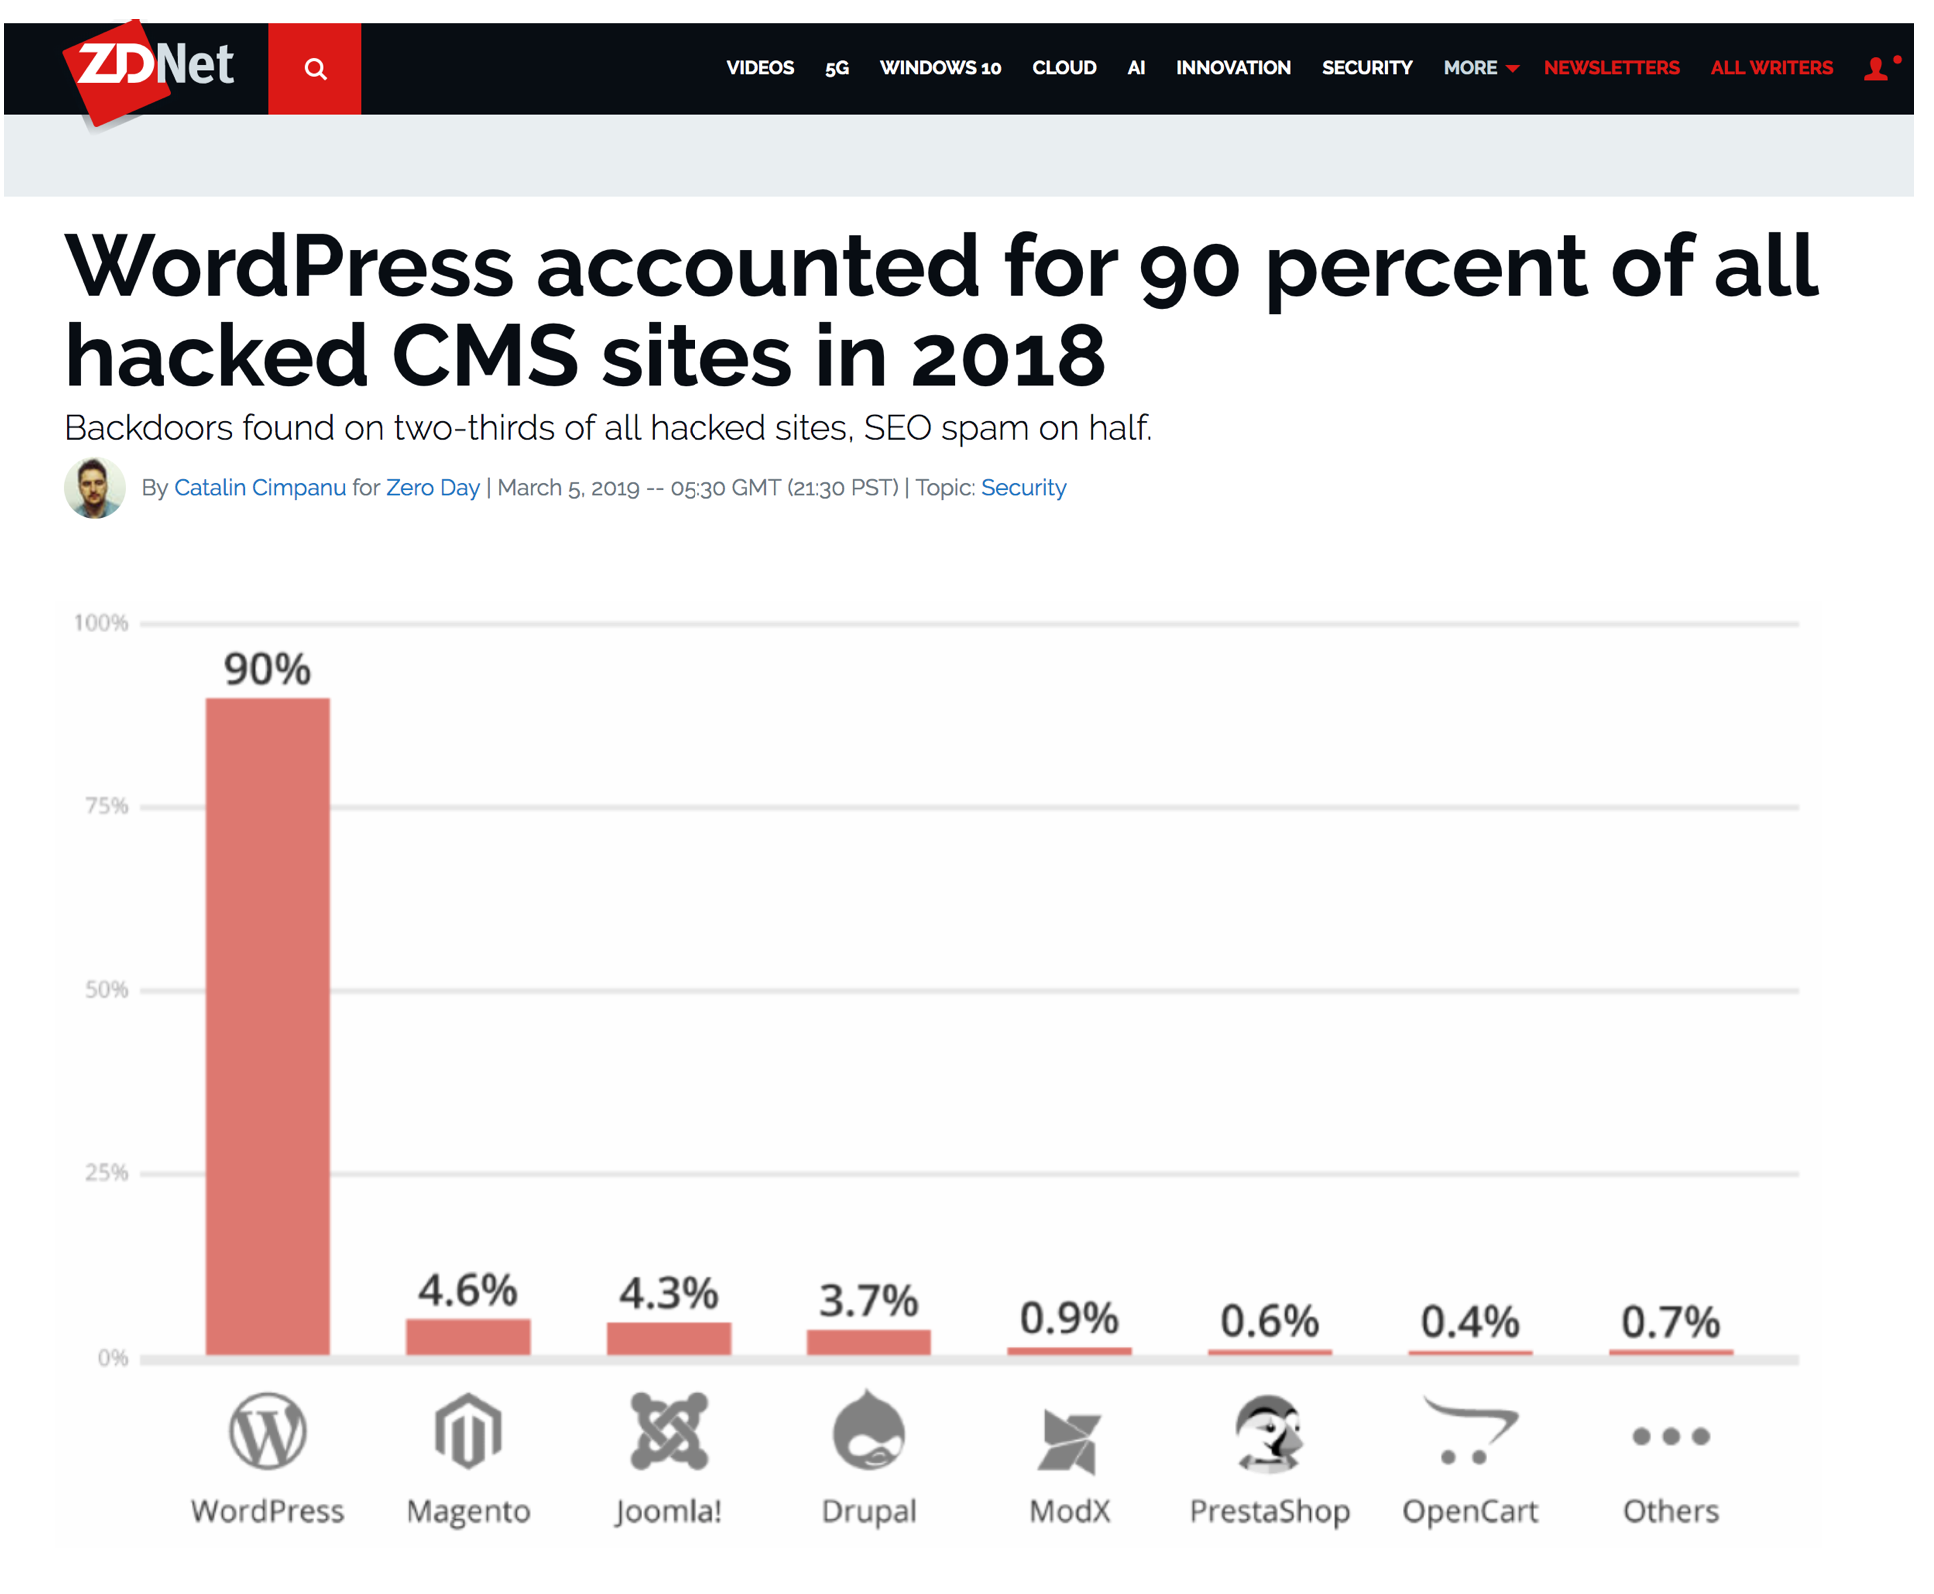 - How WordPress is the most popular CMS I can't figure. Have you ever seen digital rage? Hacked sites induce that. It's why I love Squarespace. Squarespace isn't anywhere on that list because it's designed completely differently than all those other platforms.